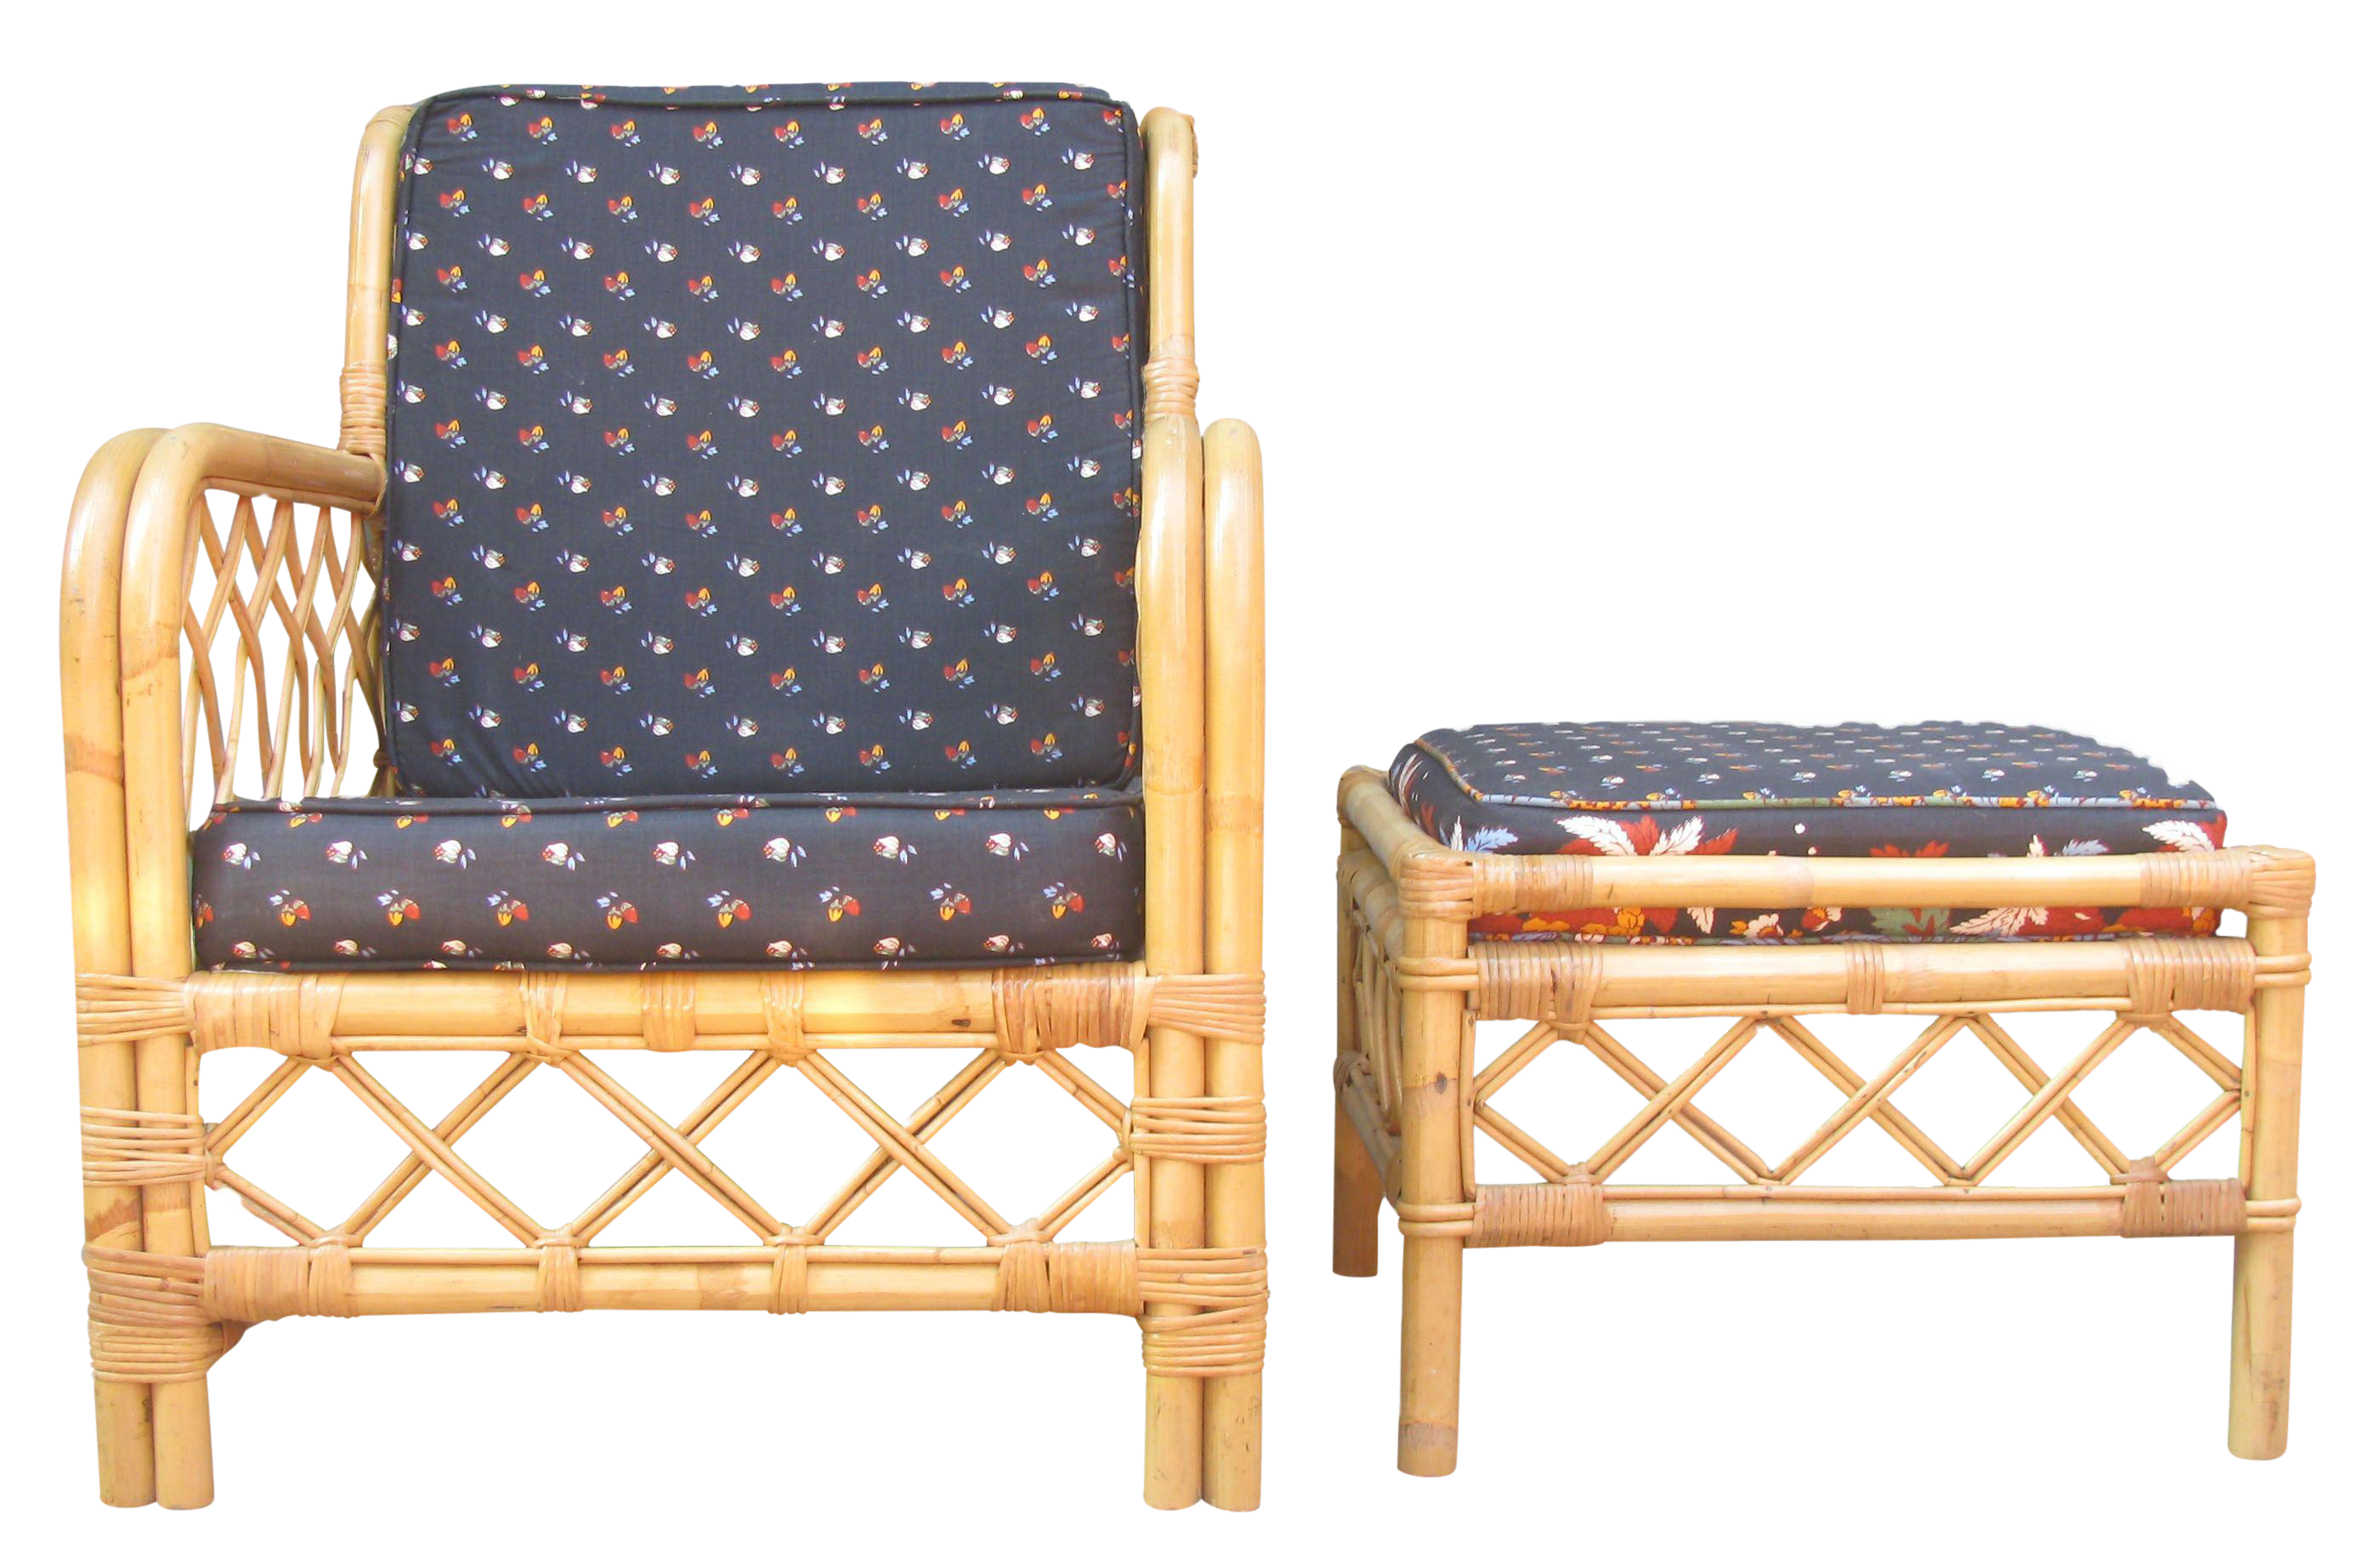 id brighton chippendale pavilion master seating chinoiserie for rattan chairs sale edited f at chair bamboo black armchair furniture style